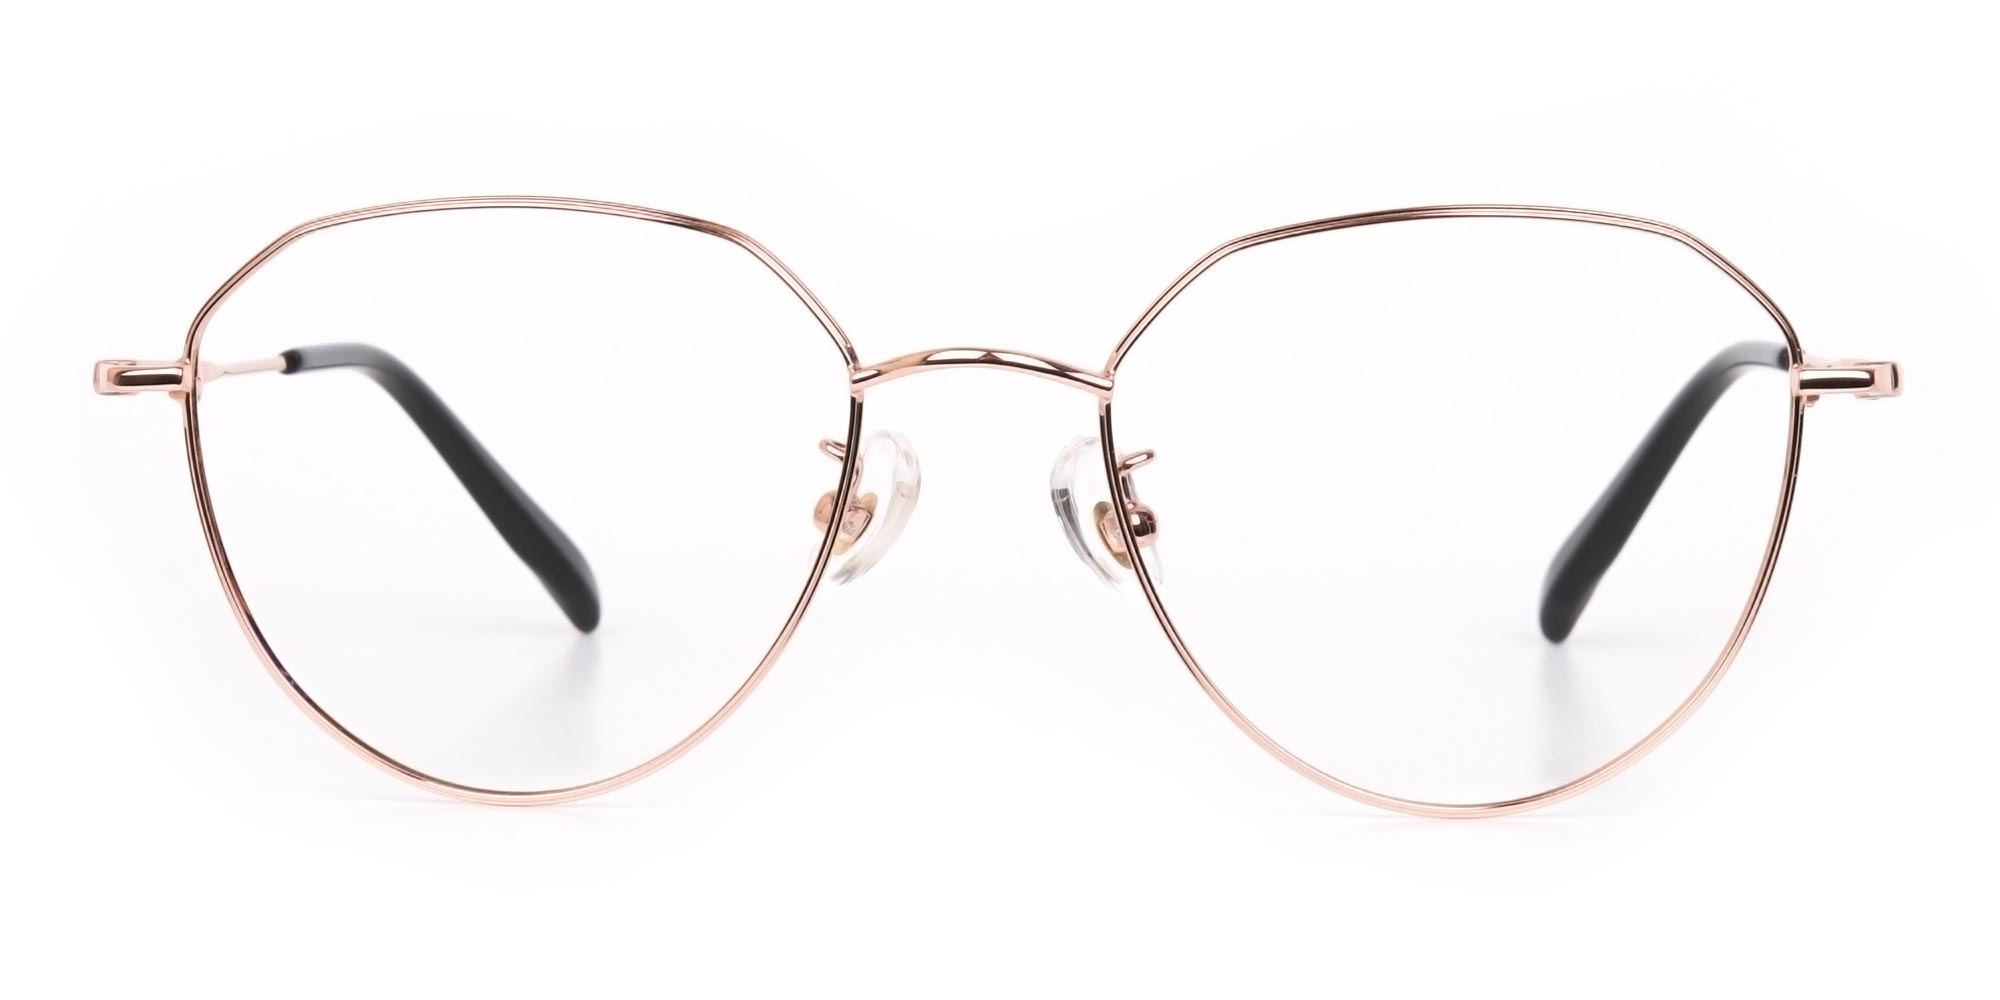 Rose Gold Aviator Glasses in Metal for Oval face shape